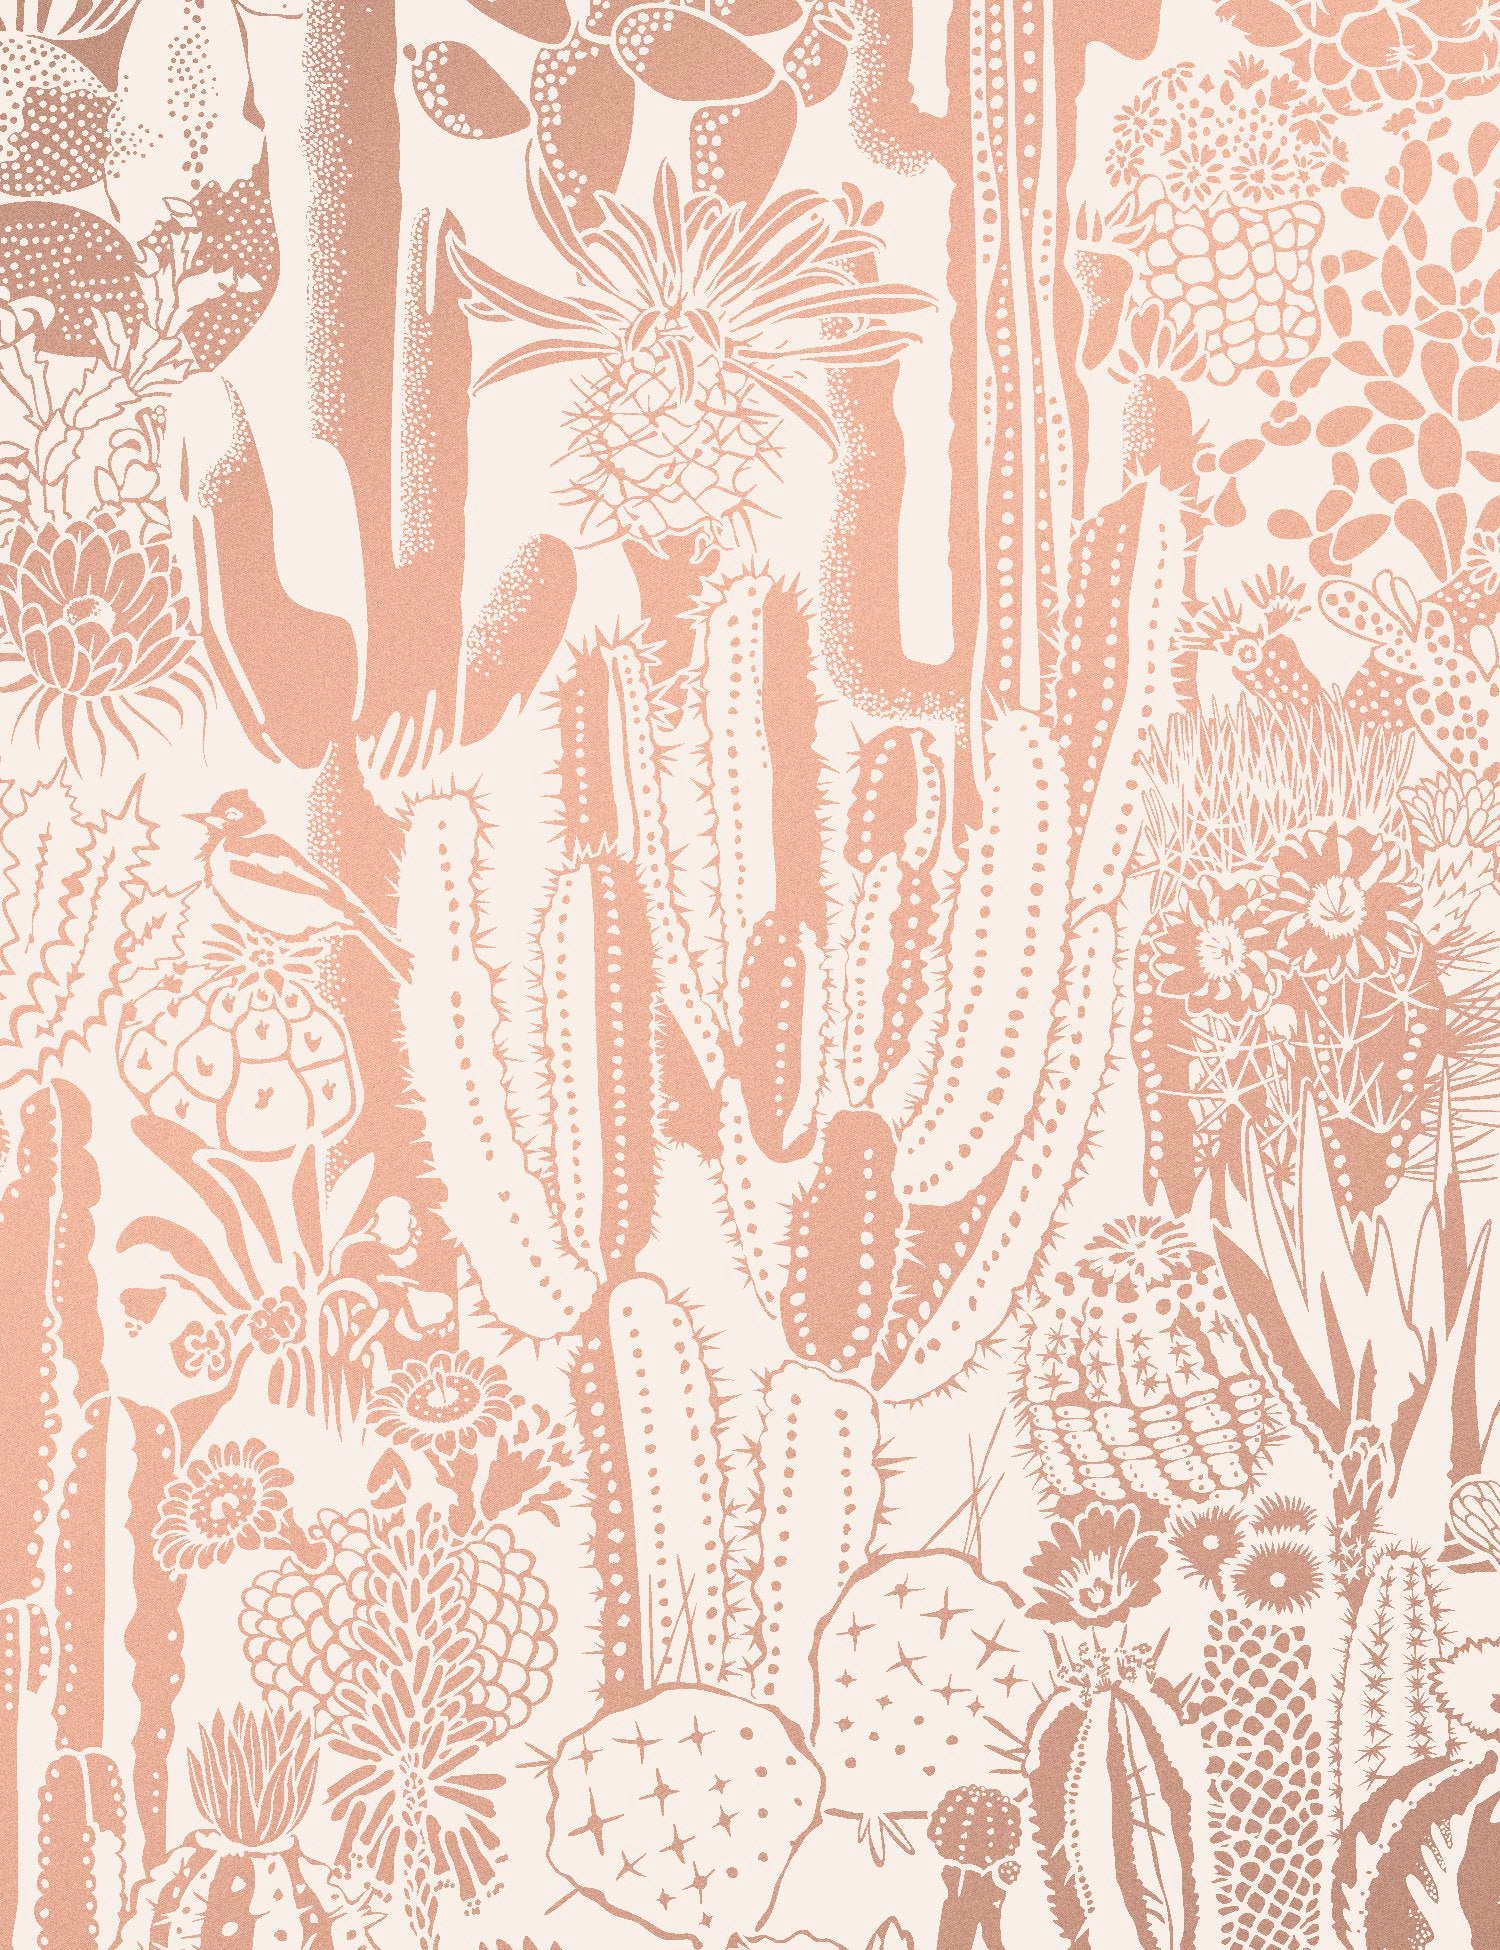 Cactus Spirit Designer Wallpaper By Aimee Wilder Made In The Usa